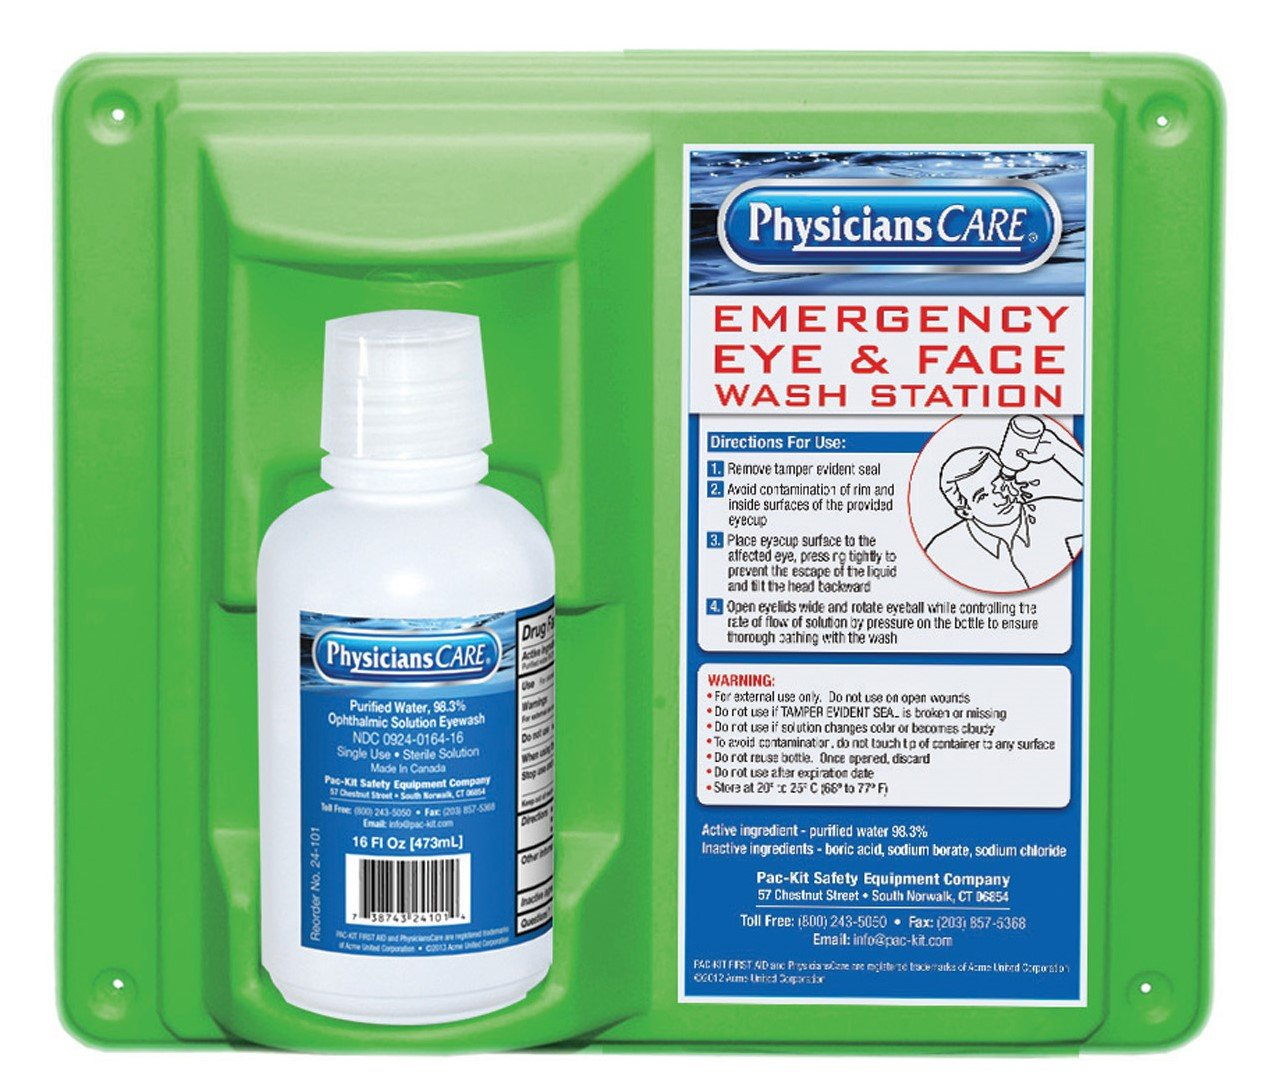 PhysiciansCare by First Aid Only 24-000 Wall Mountable Eye Flush Station with Single 16 oz Bottle, 11-3/4'' L x 4'' W x 13-3/4'' H by Pac-Kit